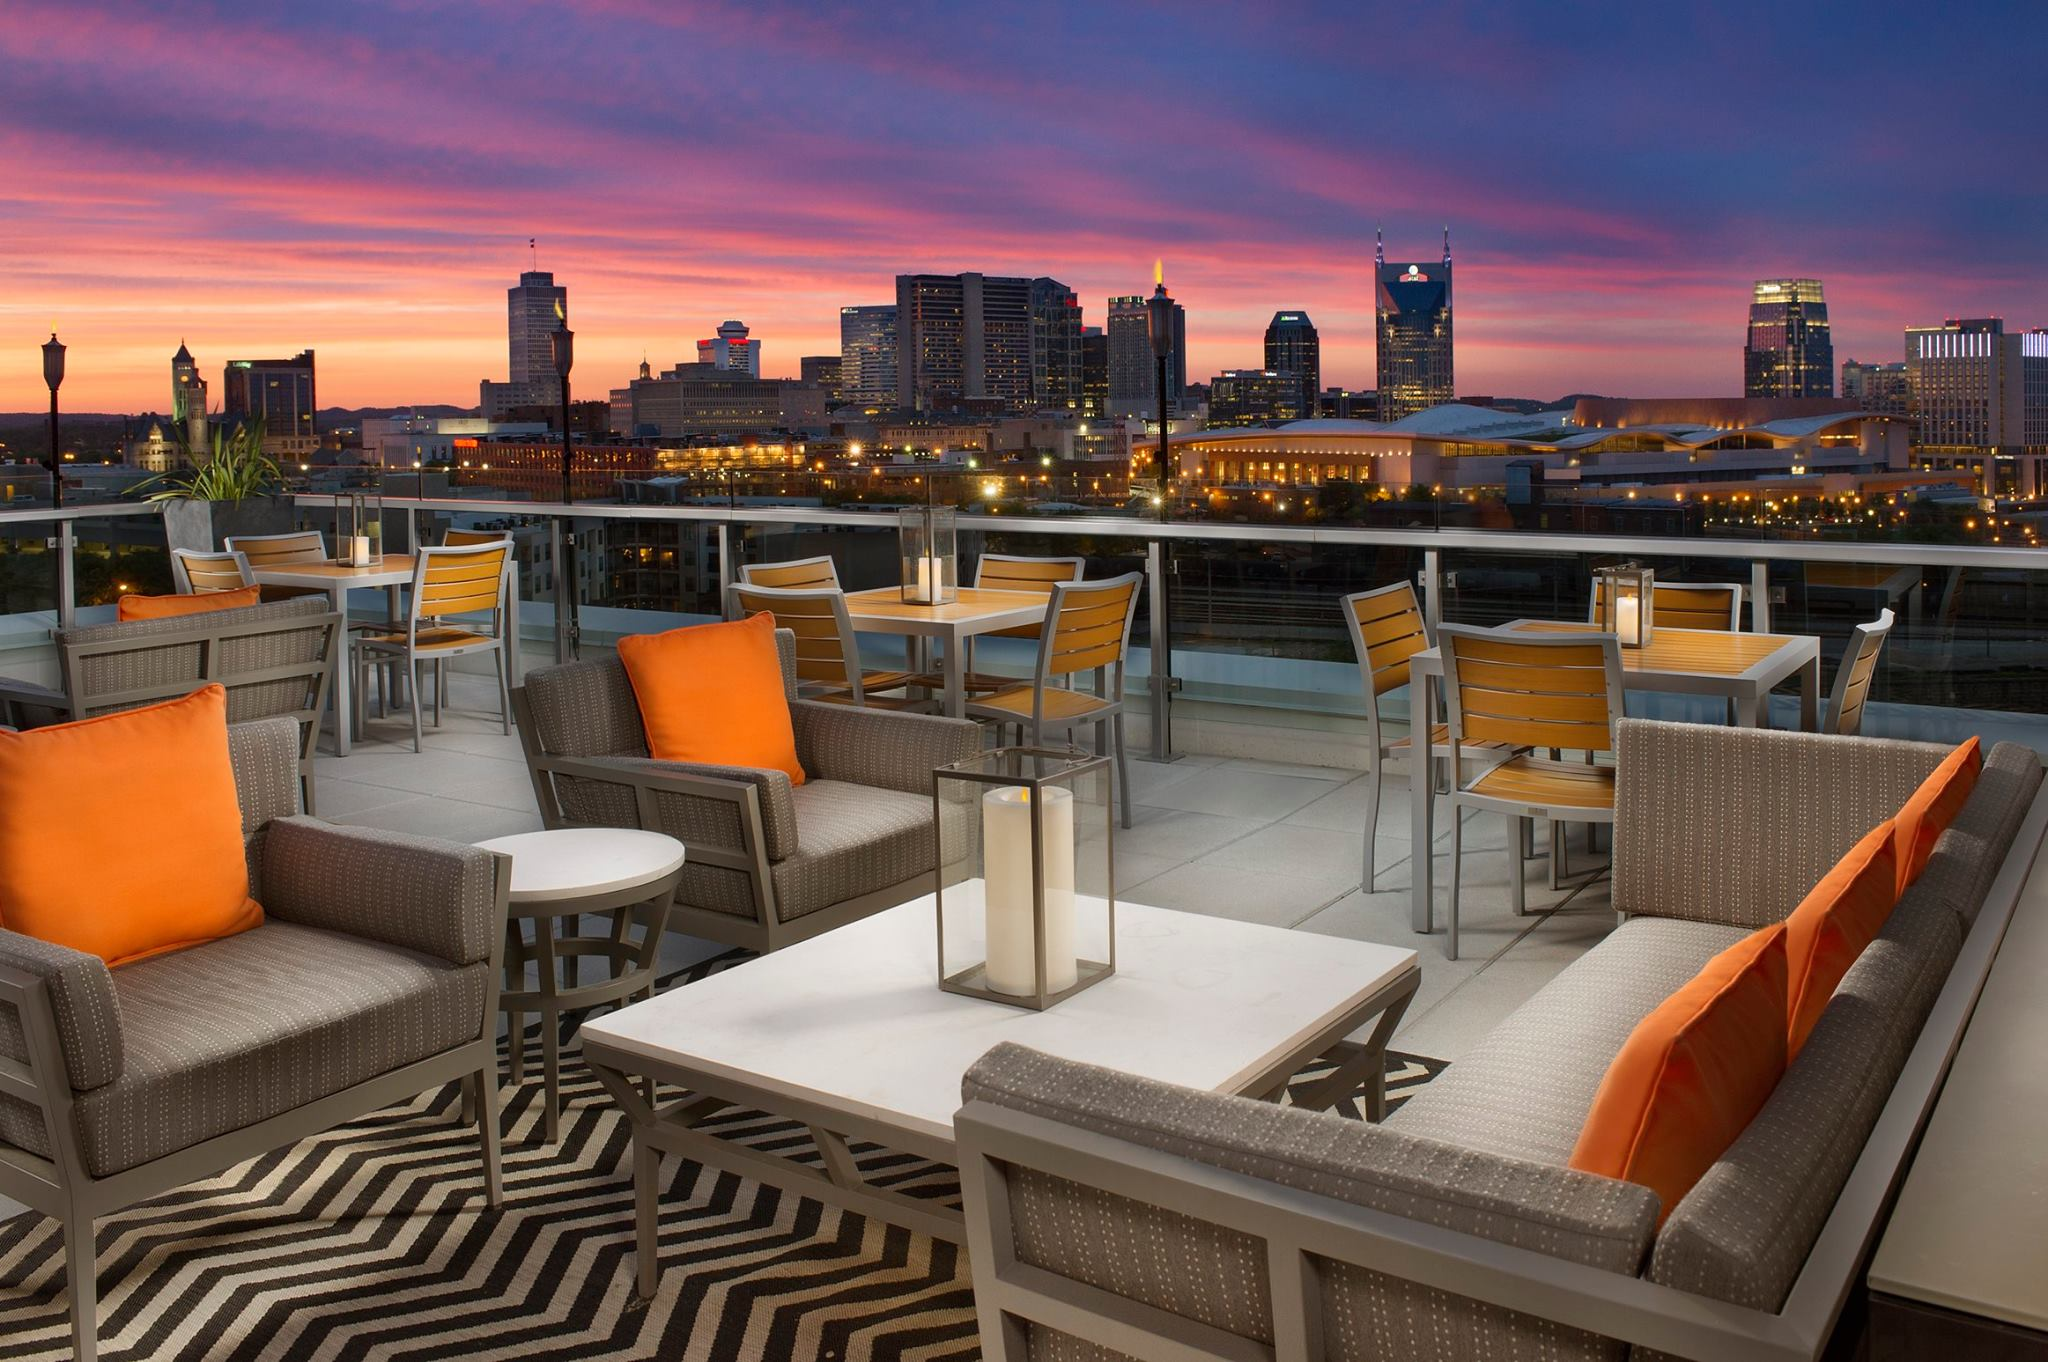 Up Rooftop Lounge The Best Rooftop Restaurant In Nashville